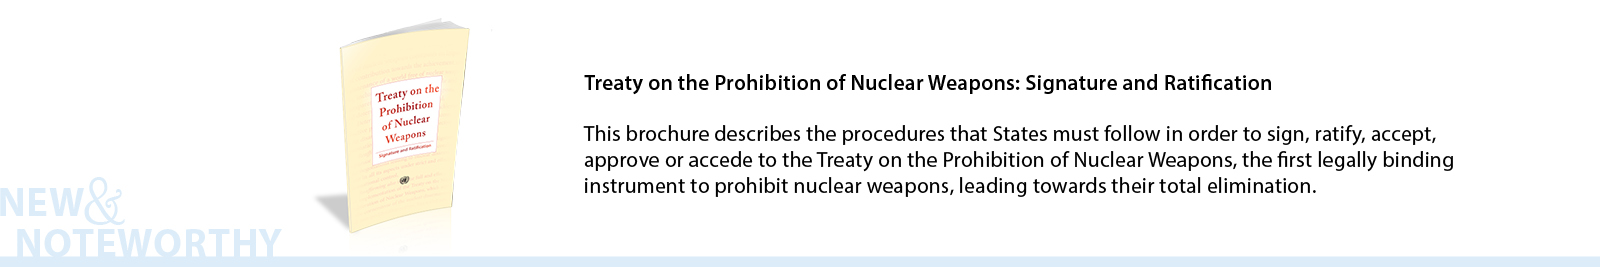 The Treaty on the Prohibition of Nuclear Weapons is the first legally binding instrument to prohibit nuclear weapons, leading towards their total elimination. For those nations that are party to it, the treaty prohibits the development, testing, production, stockpiling, stationing, transfer, use and threat of use of nuclear weapons, as well as assistance and encouragement to the prohibited activities. This brochure describes the procedures that States must follow in order to sign, ratify, accept, approve or accede to this treaty.